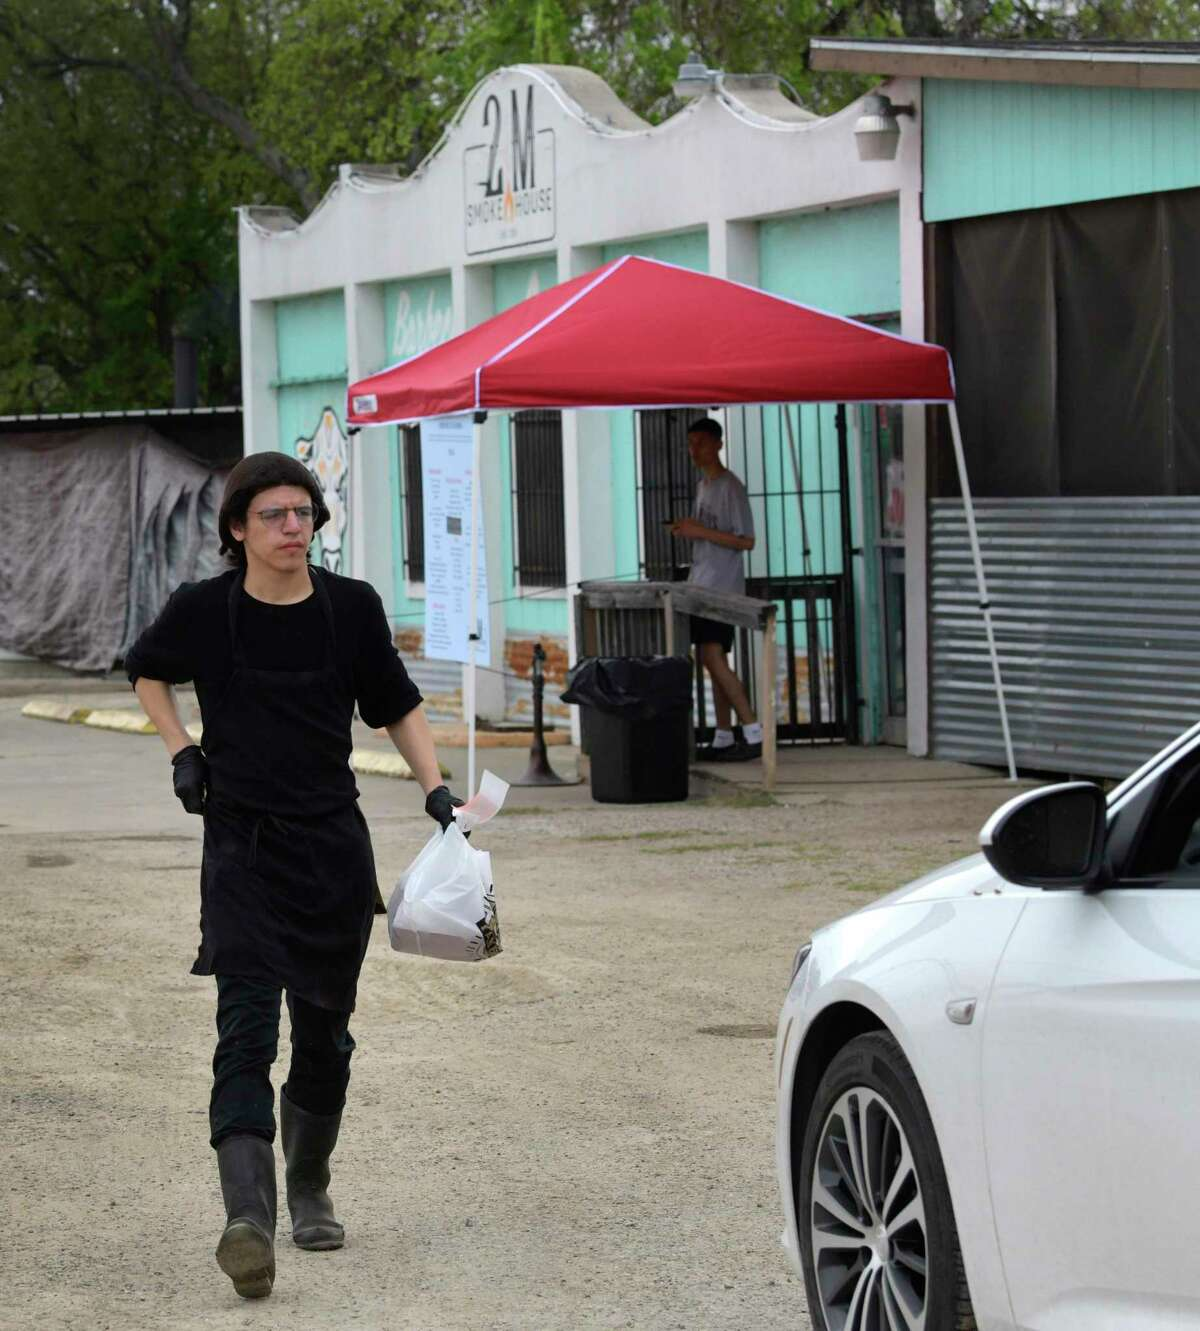 Nathaniel Campos rushes an order to a waiting customer at 2M Smokehouse. The acclaimed barbecue joint has now moved to a system where all of the food is sold to go with a makeshift drive-thru operation due to coronavirus precautionary measures.